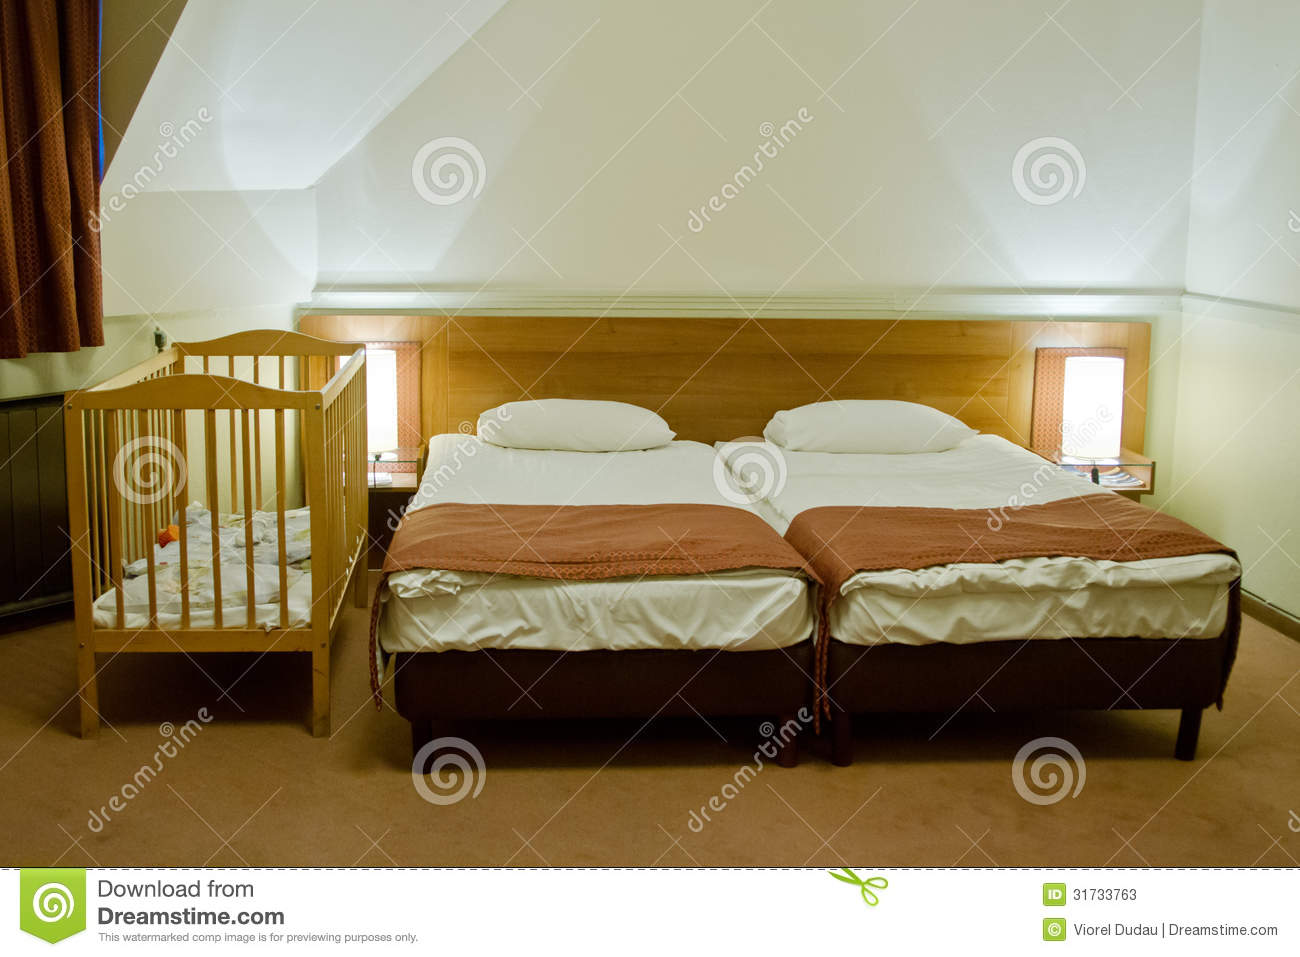 Cot In Hotel Room